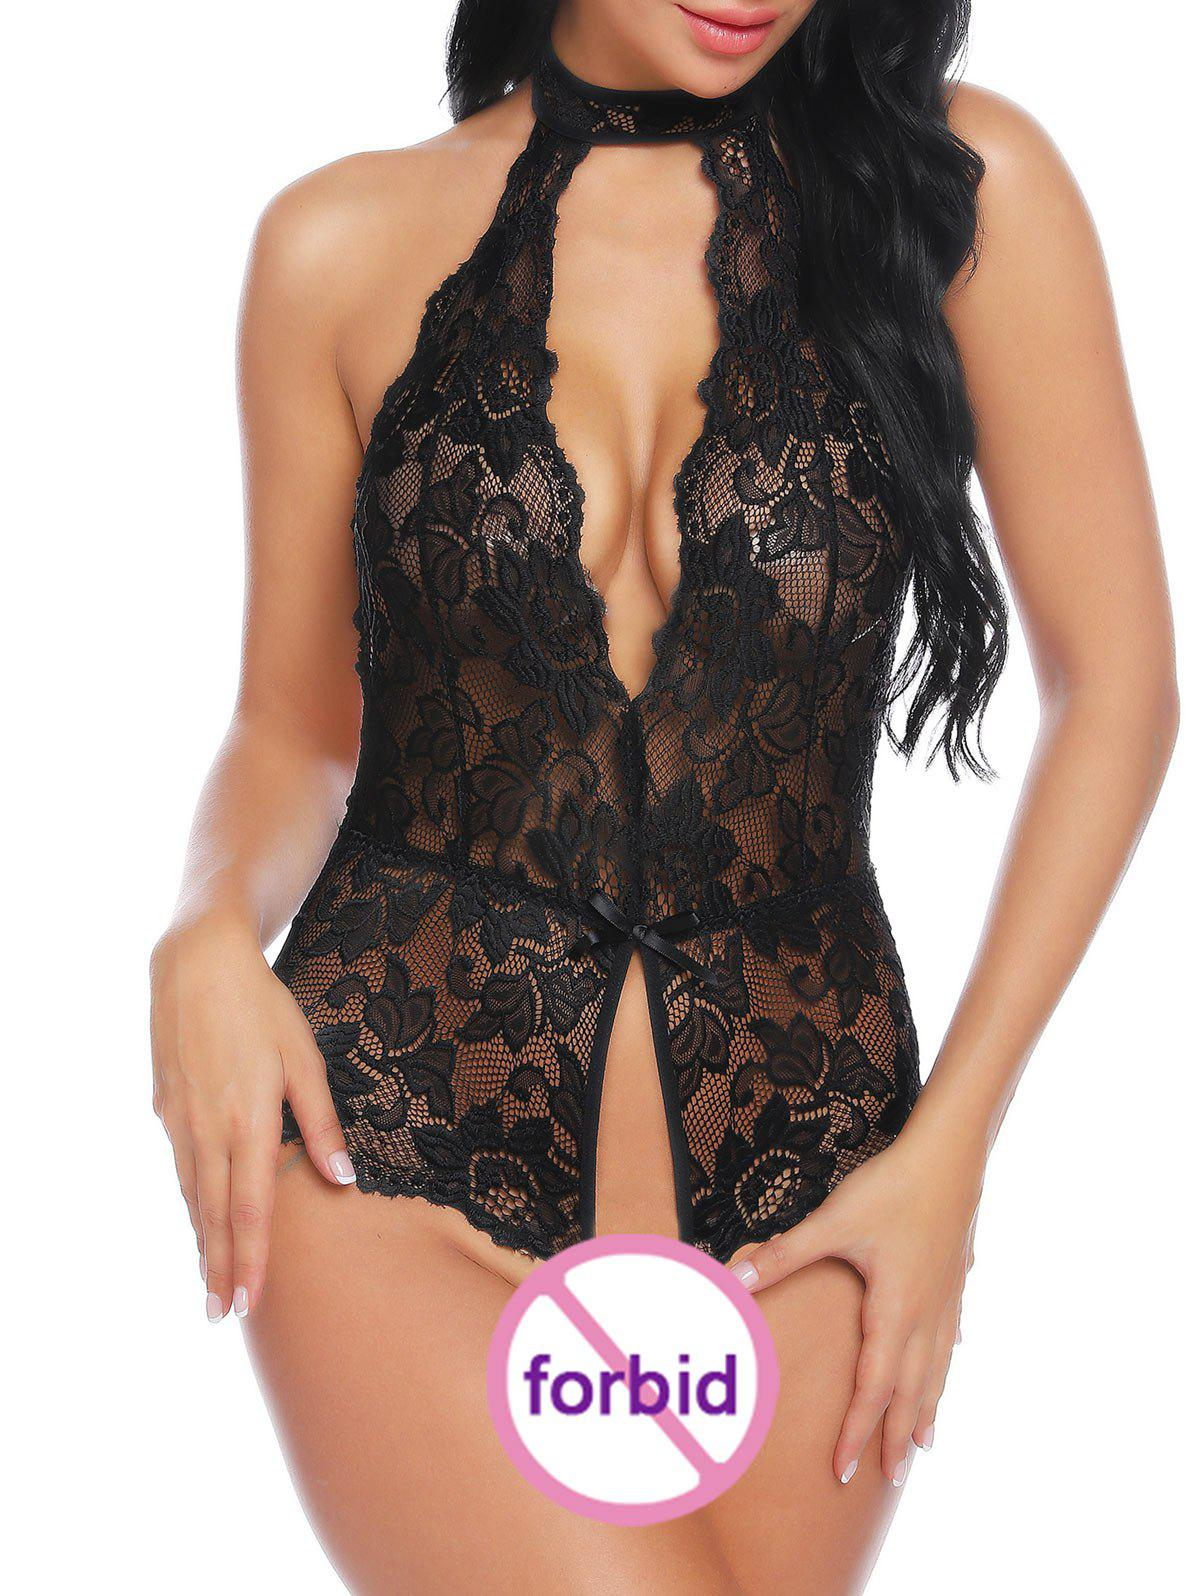 Backless Ouvrir Crotch Sheer Lace Teddy - Noir L